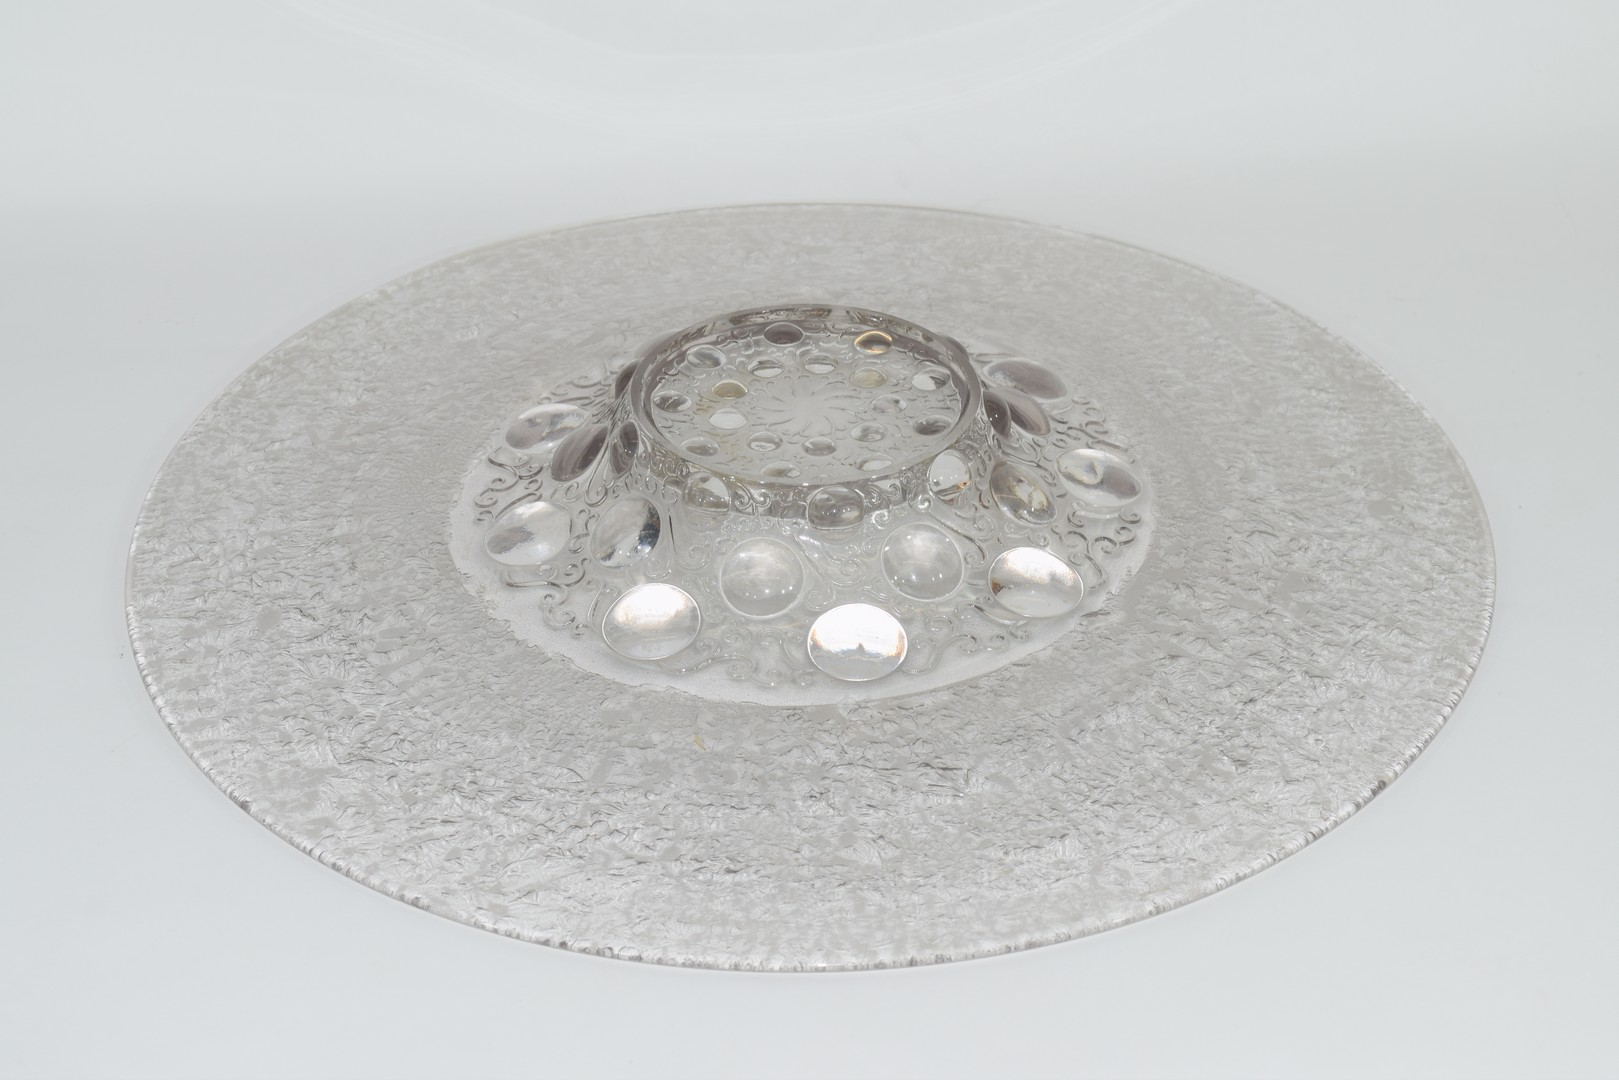 Large glass charger in Lalique style, - Image 3 of 4